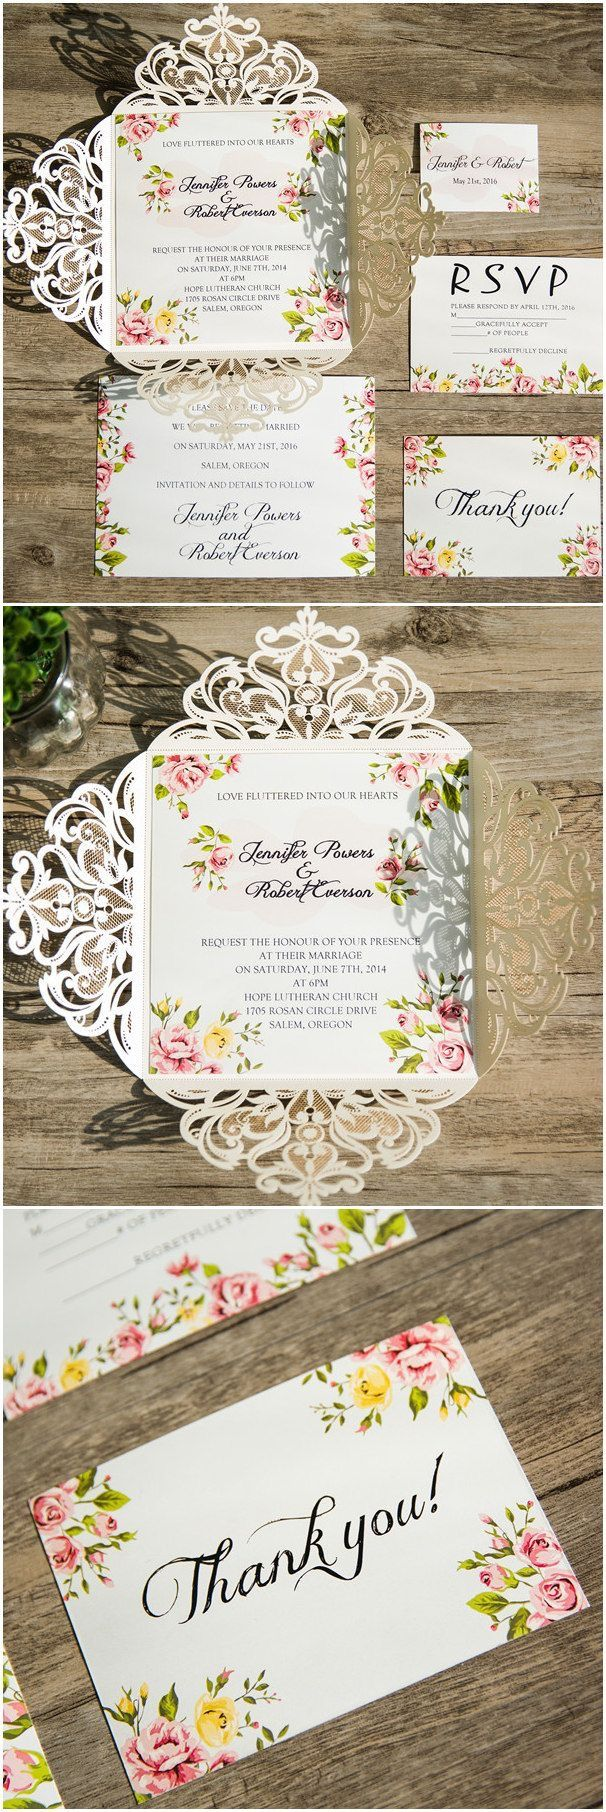 elegant wedding invites coupon codes%0A Floral invite with ornate die cut surround